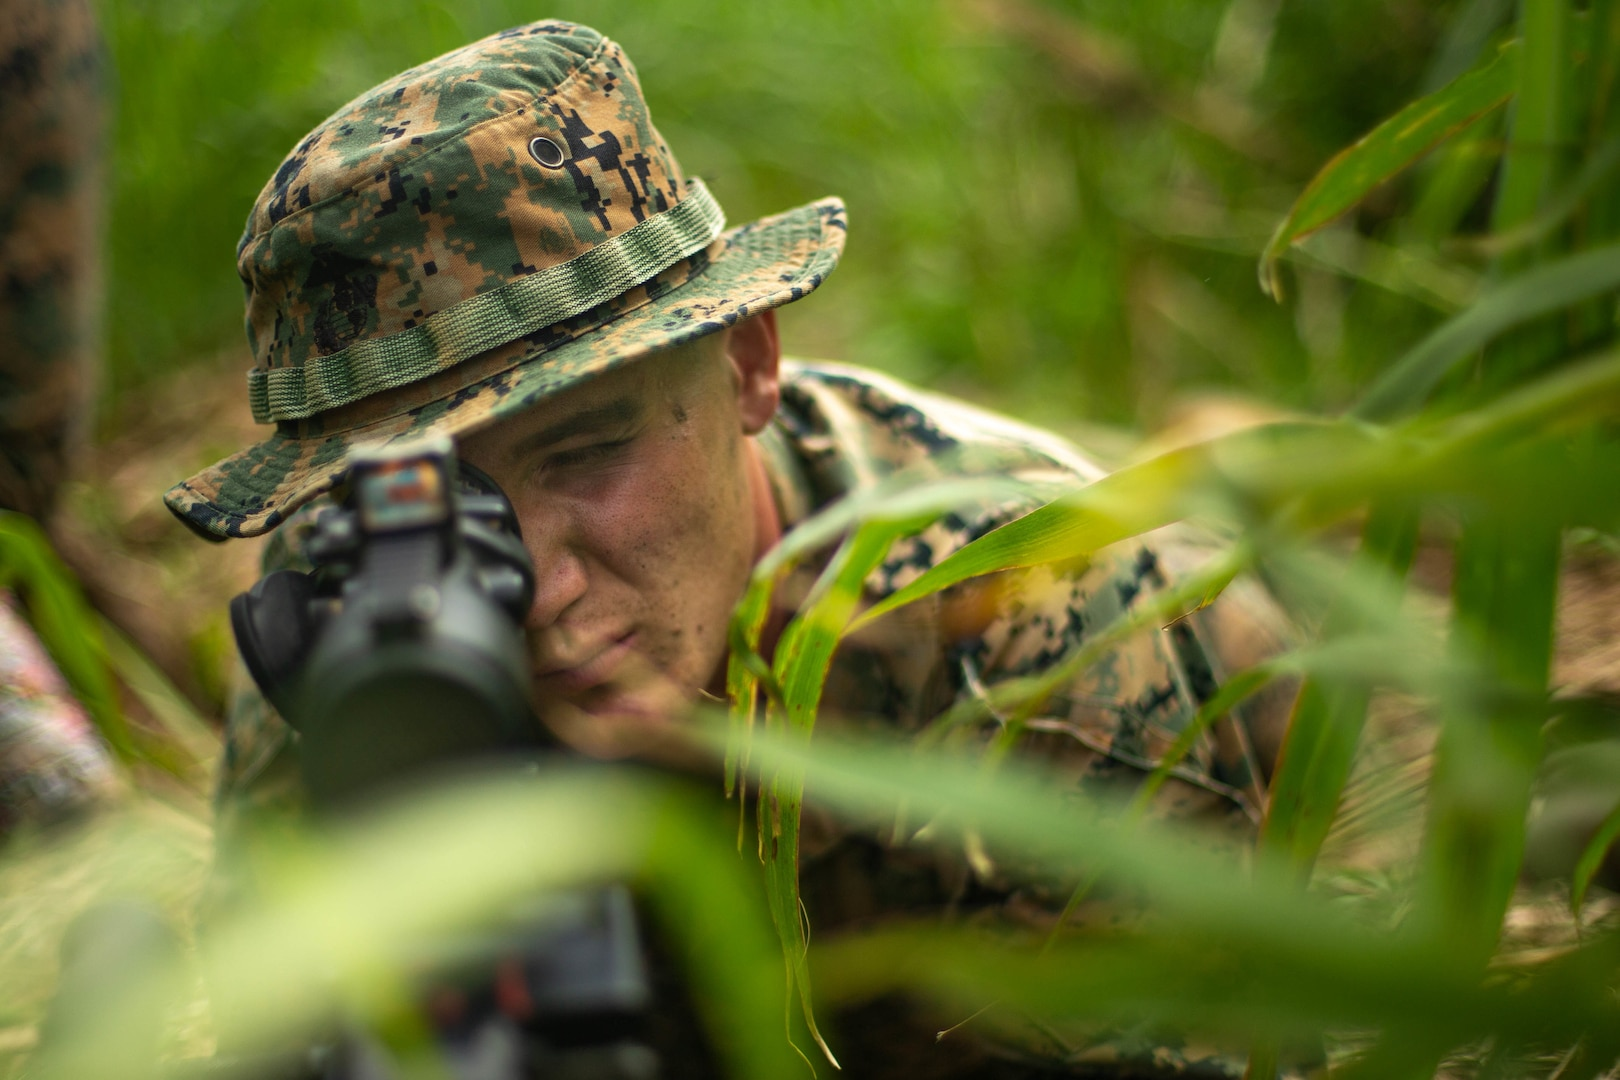 U.S. Marine Corps Lance Cpl. Clayton Takacs, a combat engineer with 3d Battalion, 8th Marine Regiment, 3d Marine Division, examines his sector of fire during Castaway 21.1 at Ie Shima, Okinawa, Japan, March 12, 2021. The exercise demonstrated the Marine Corps' ability to integrate with the joint force to seize and defend key maritime terrain, provide low-signature sustainment, and execute long-range precision fires in support of naval operations from an expeditionary advanced base. Takacs is a native of Orwell, Ohio.